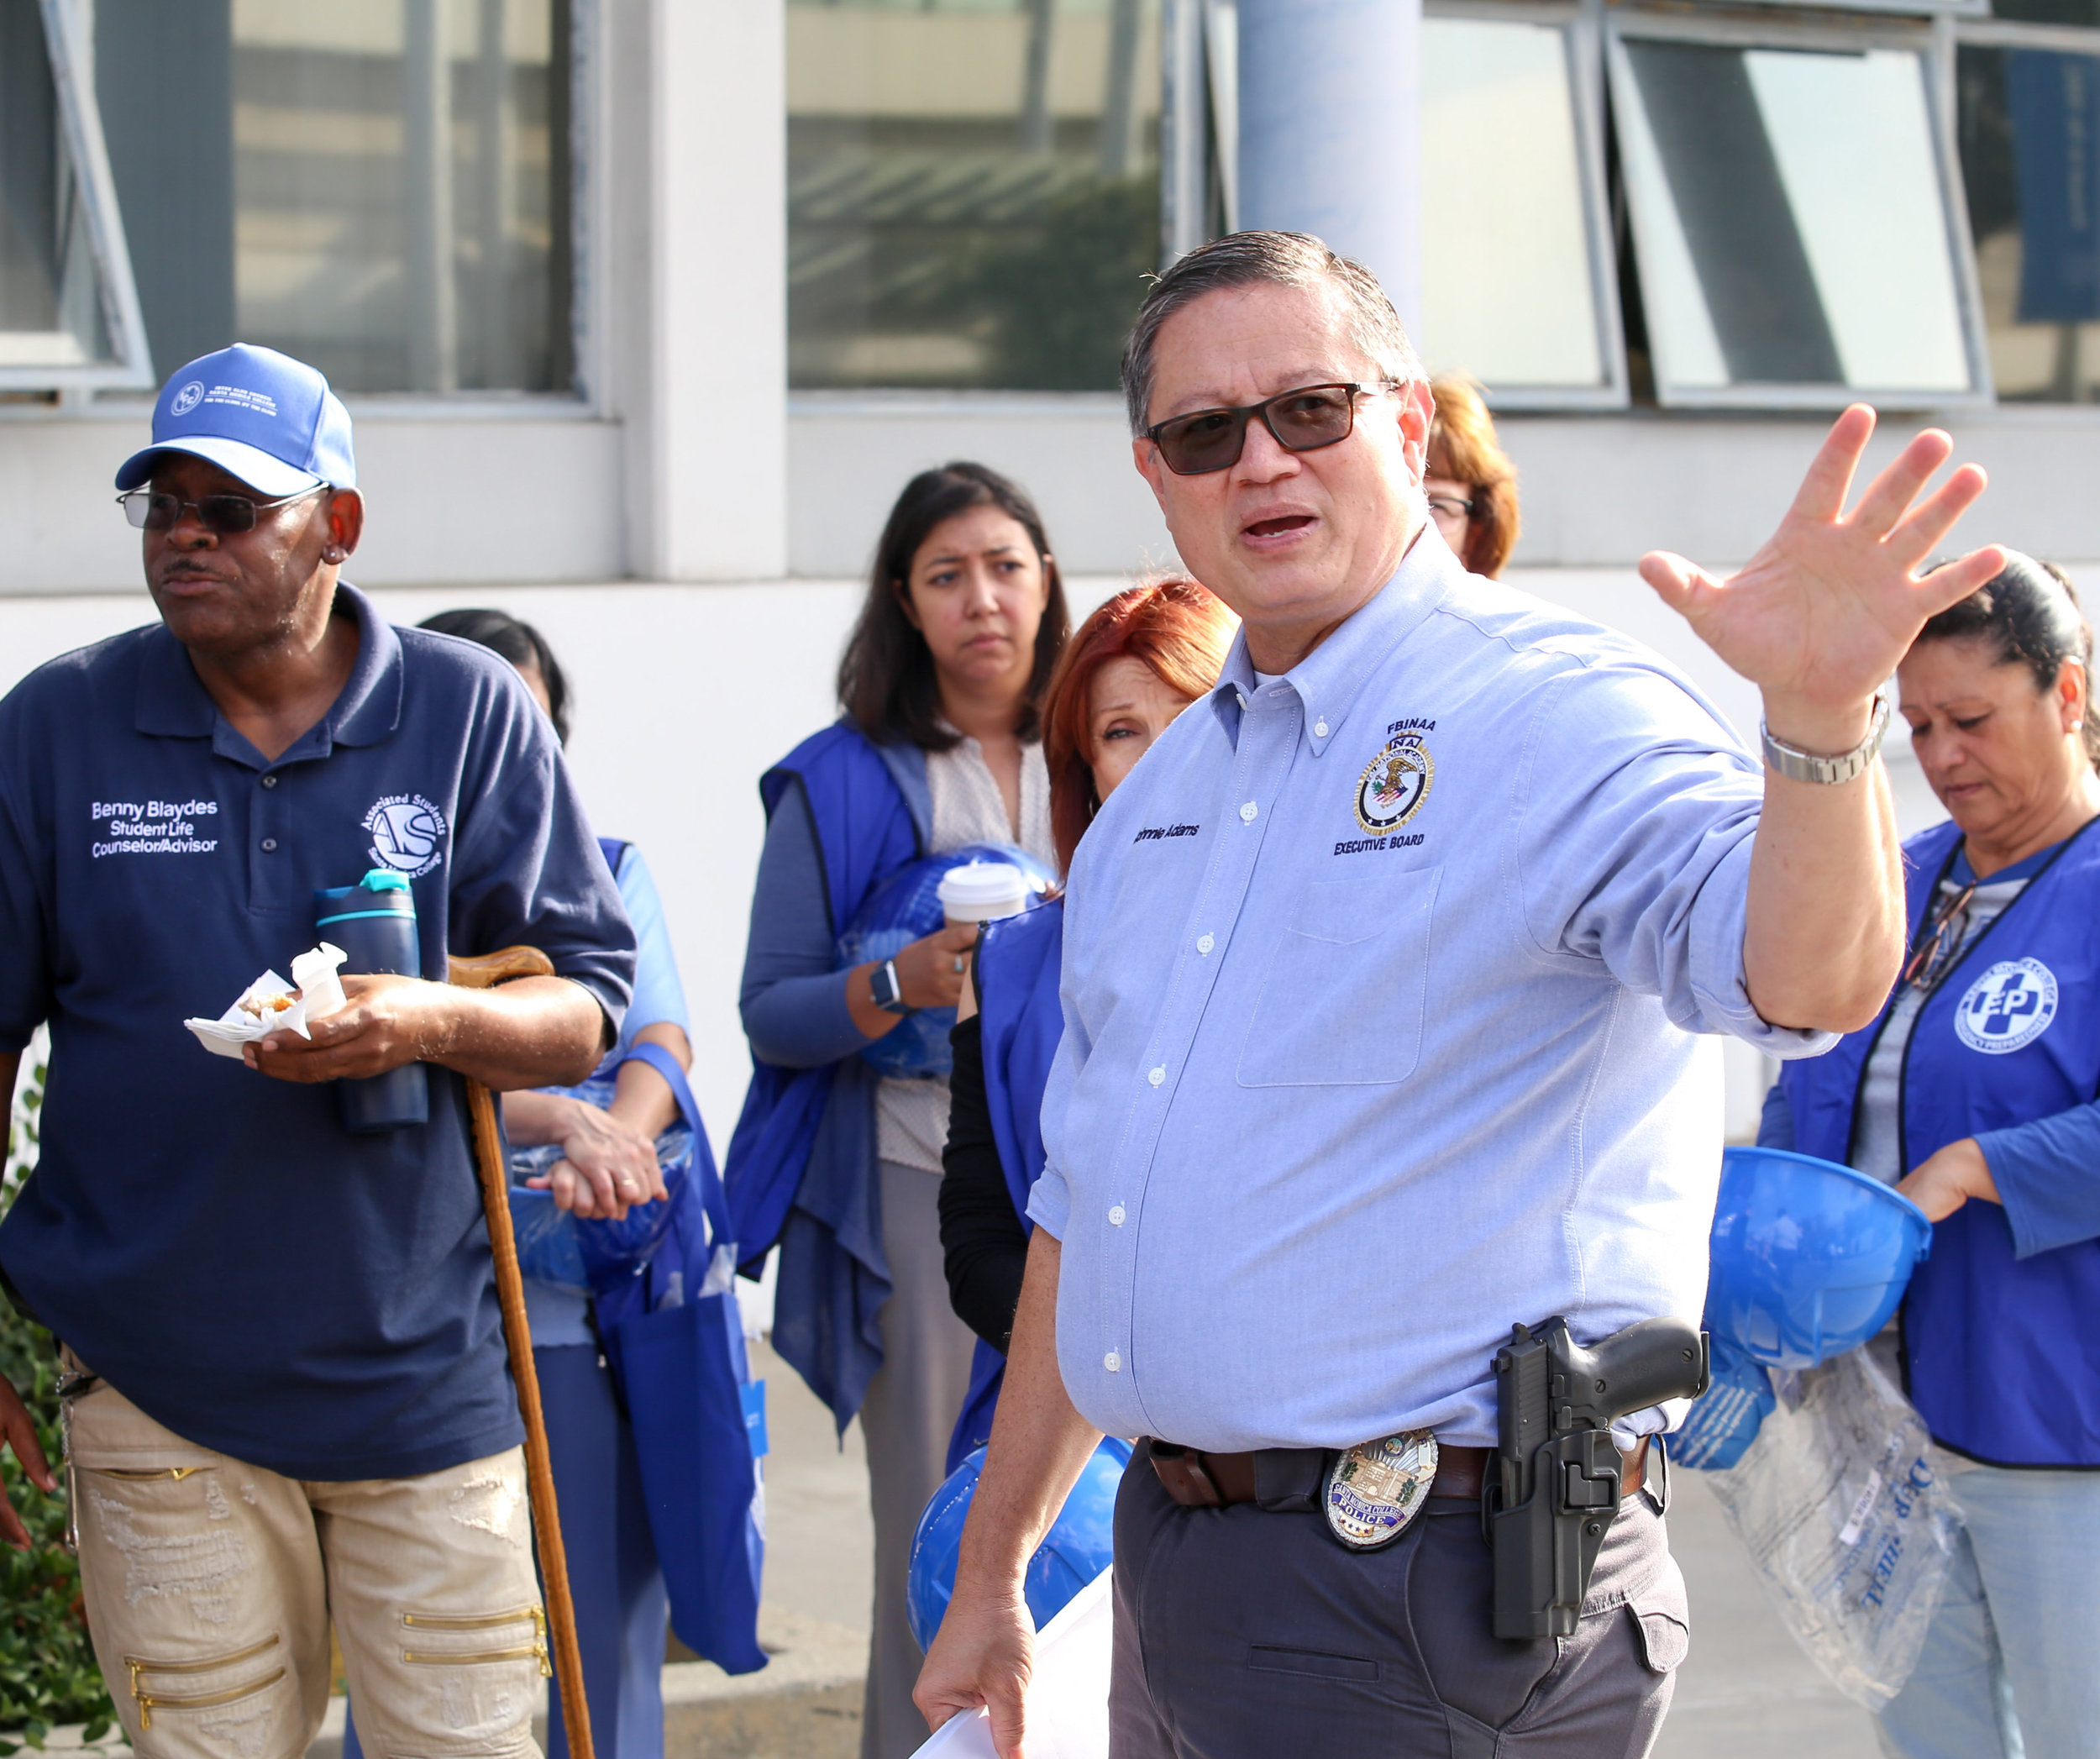 Santa Monica College's Chief of Police Johnnie Adams explains to building monitors and Student Life Counselor and Advisor Benny Blaydes (left) the protocol for submitting their reports back to their command center set up outside of Santa Monica College's Main Campus Library for The Great California Shakedown drill in Santa Monica, Calif on Thursday, October 19th 2017. (Photo by: Thane Fernandes)